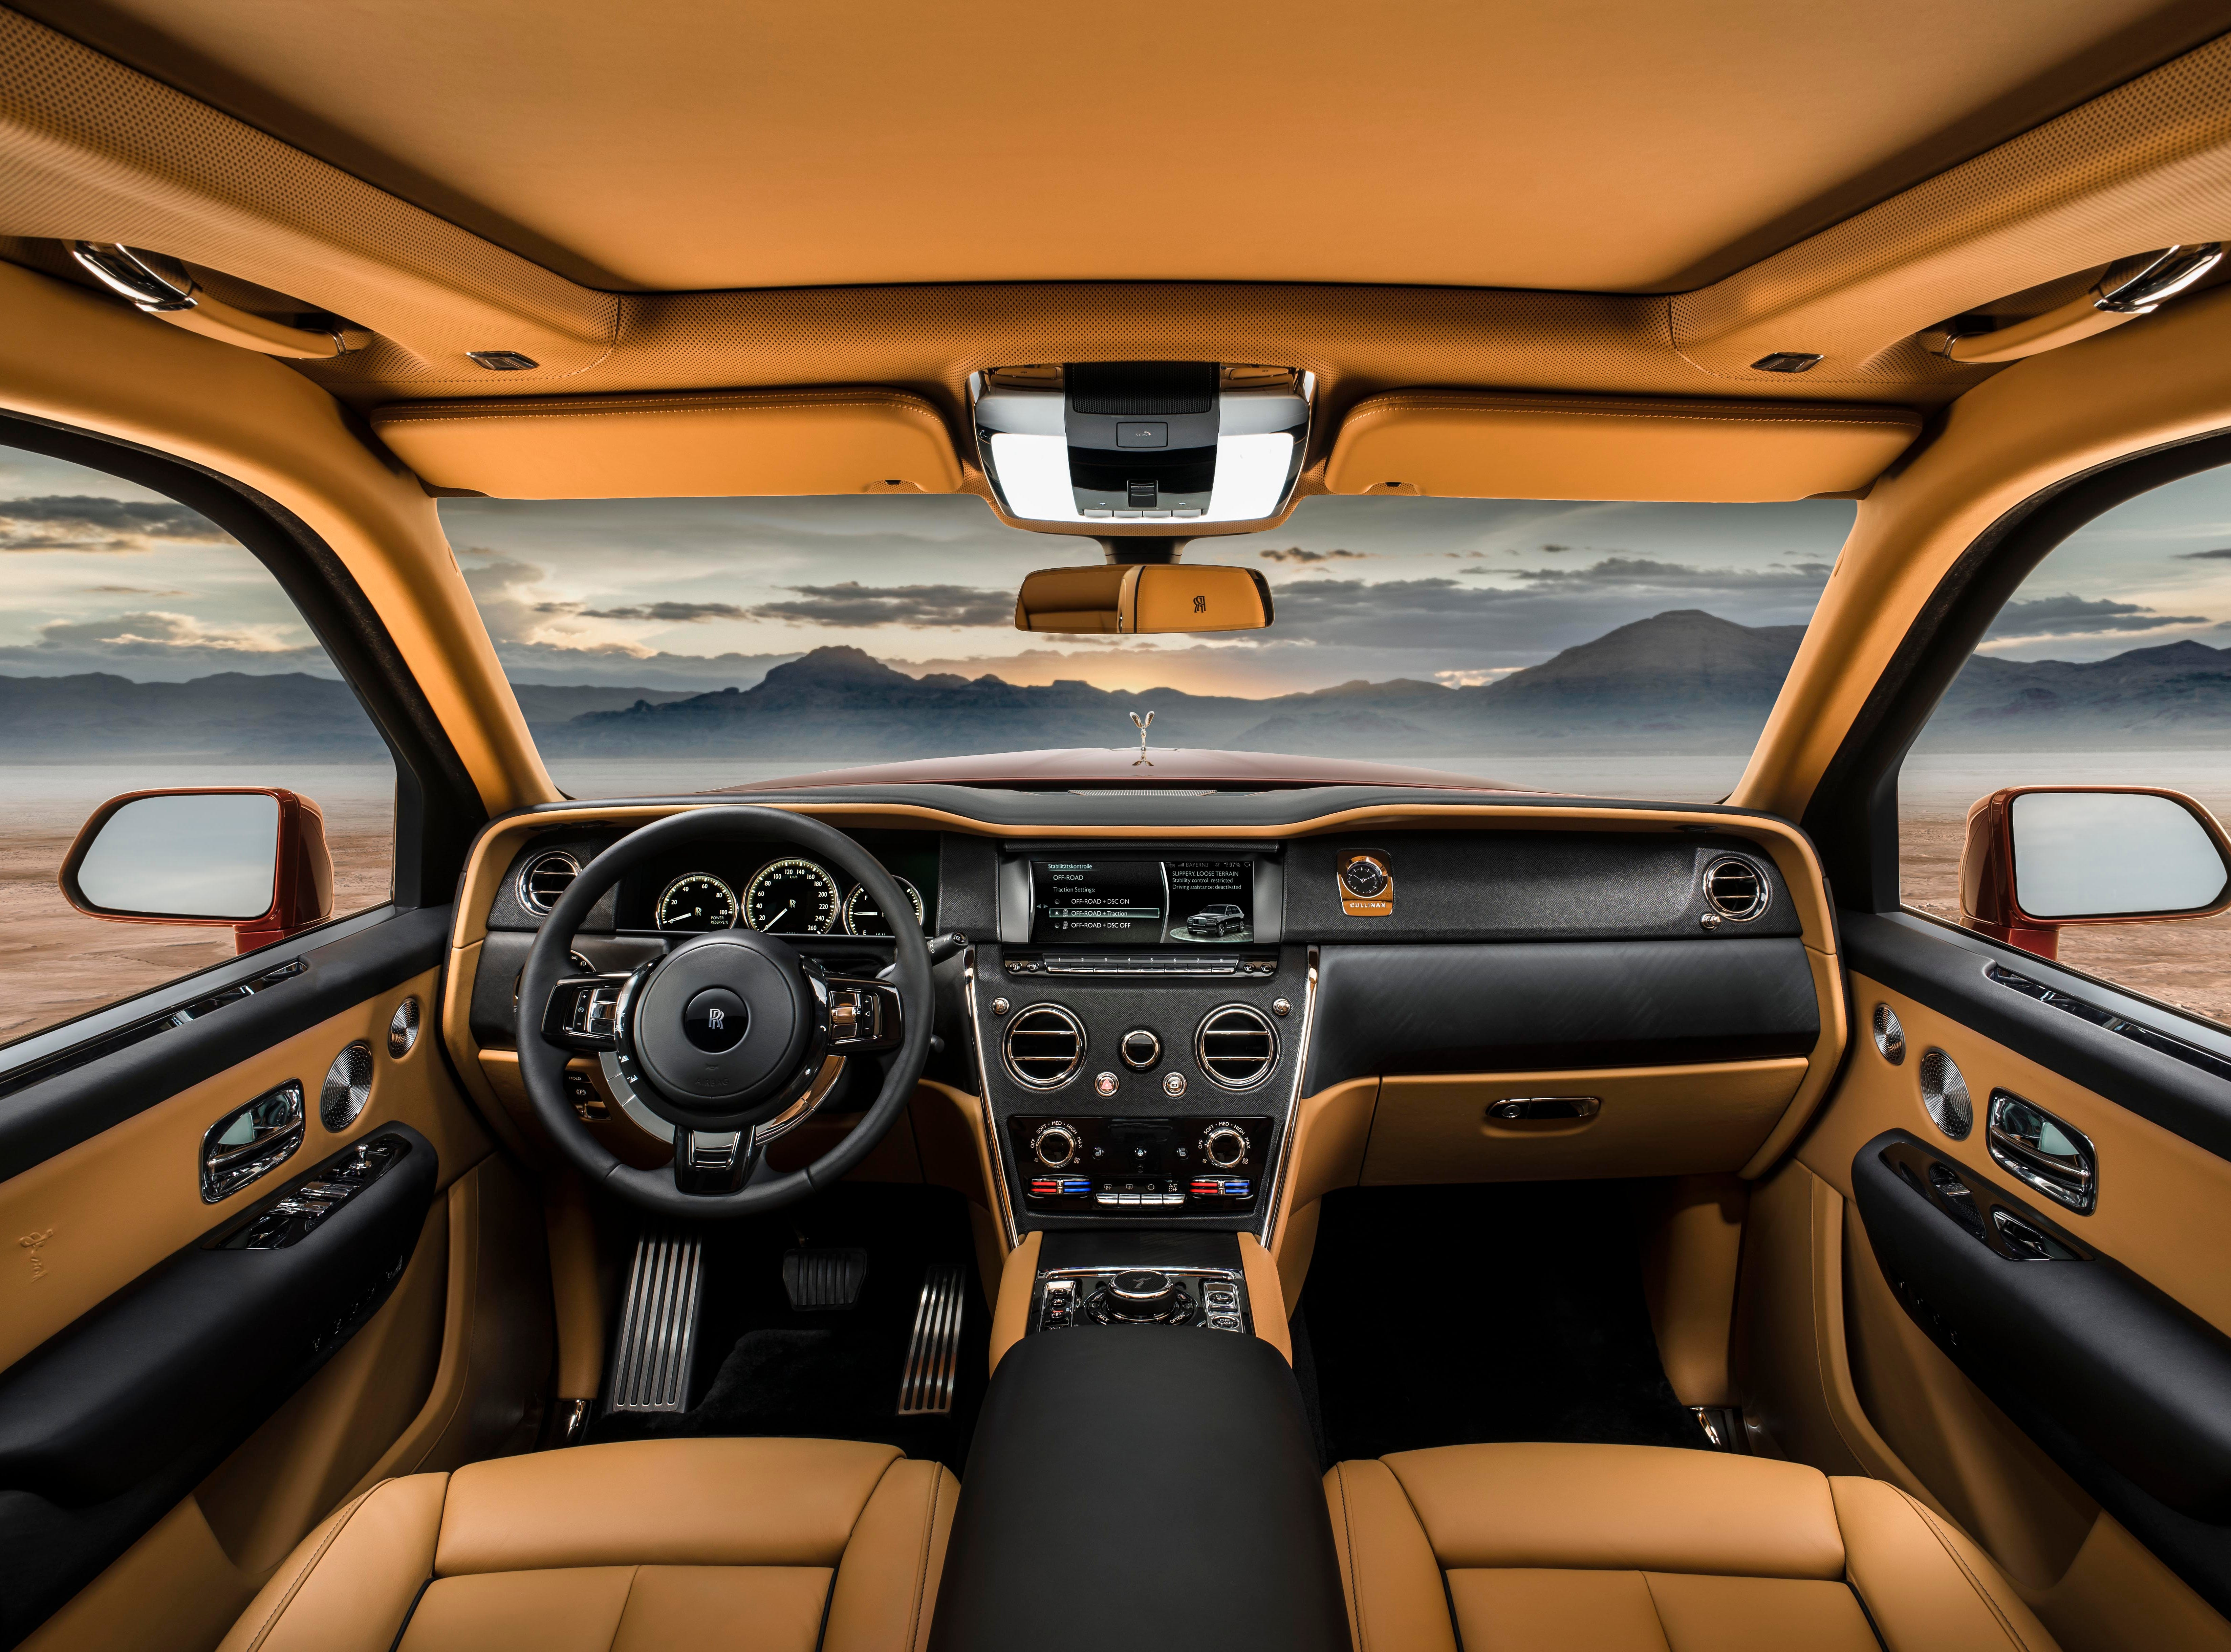 The interior of a Rolls-Royce Cullinan.